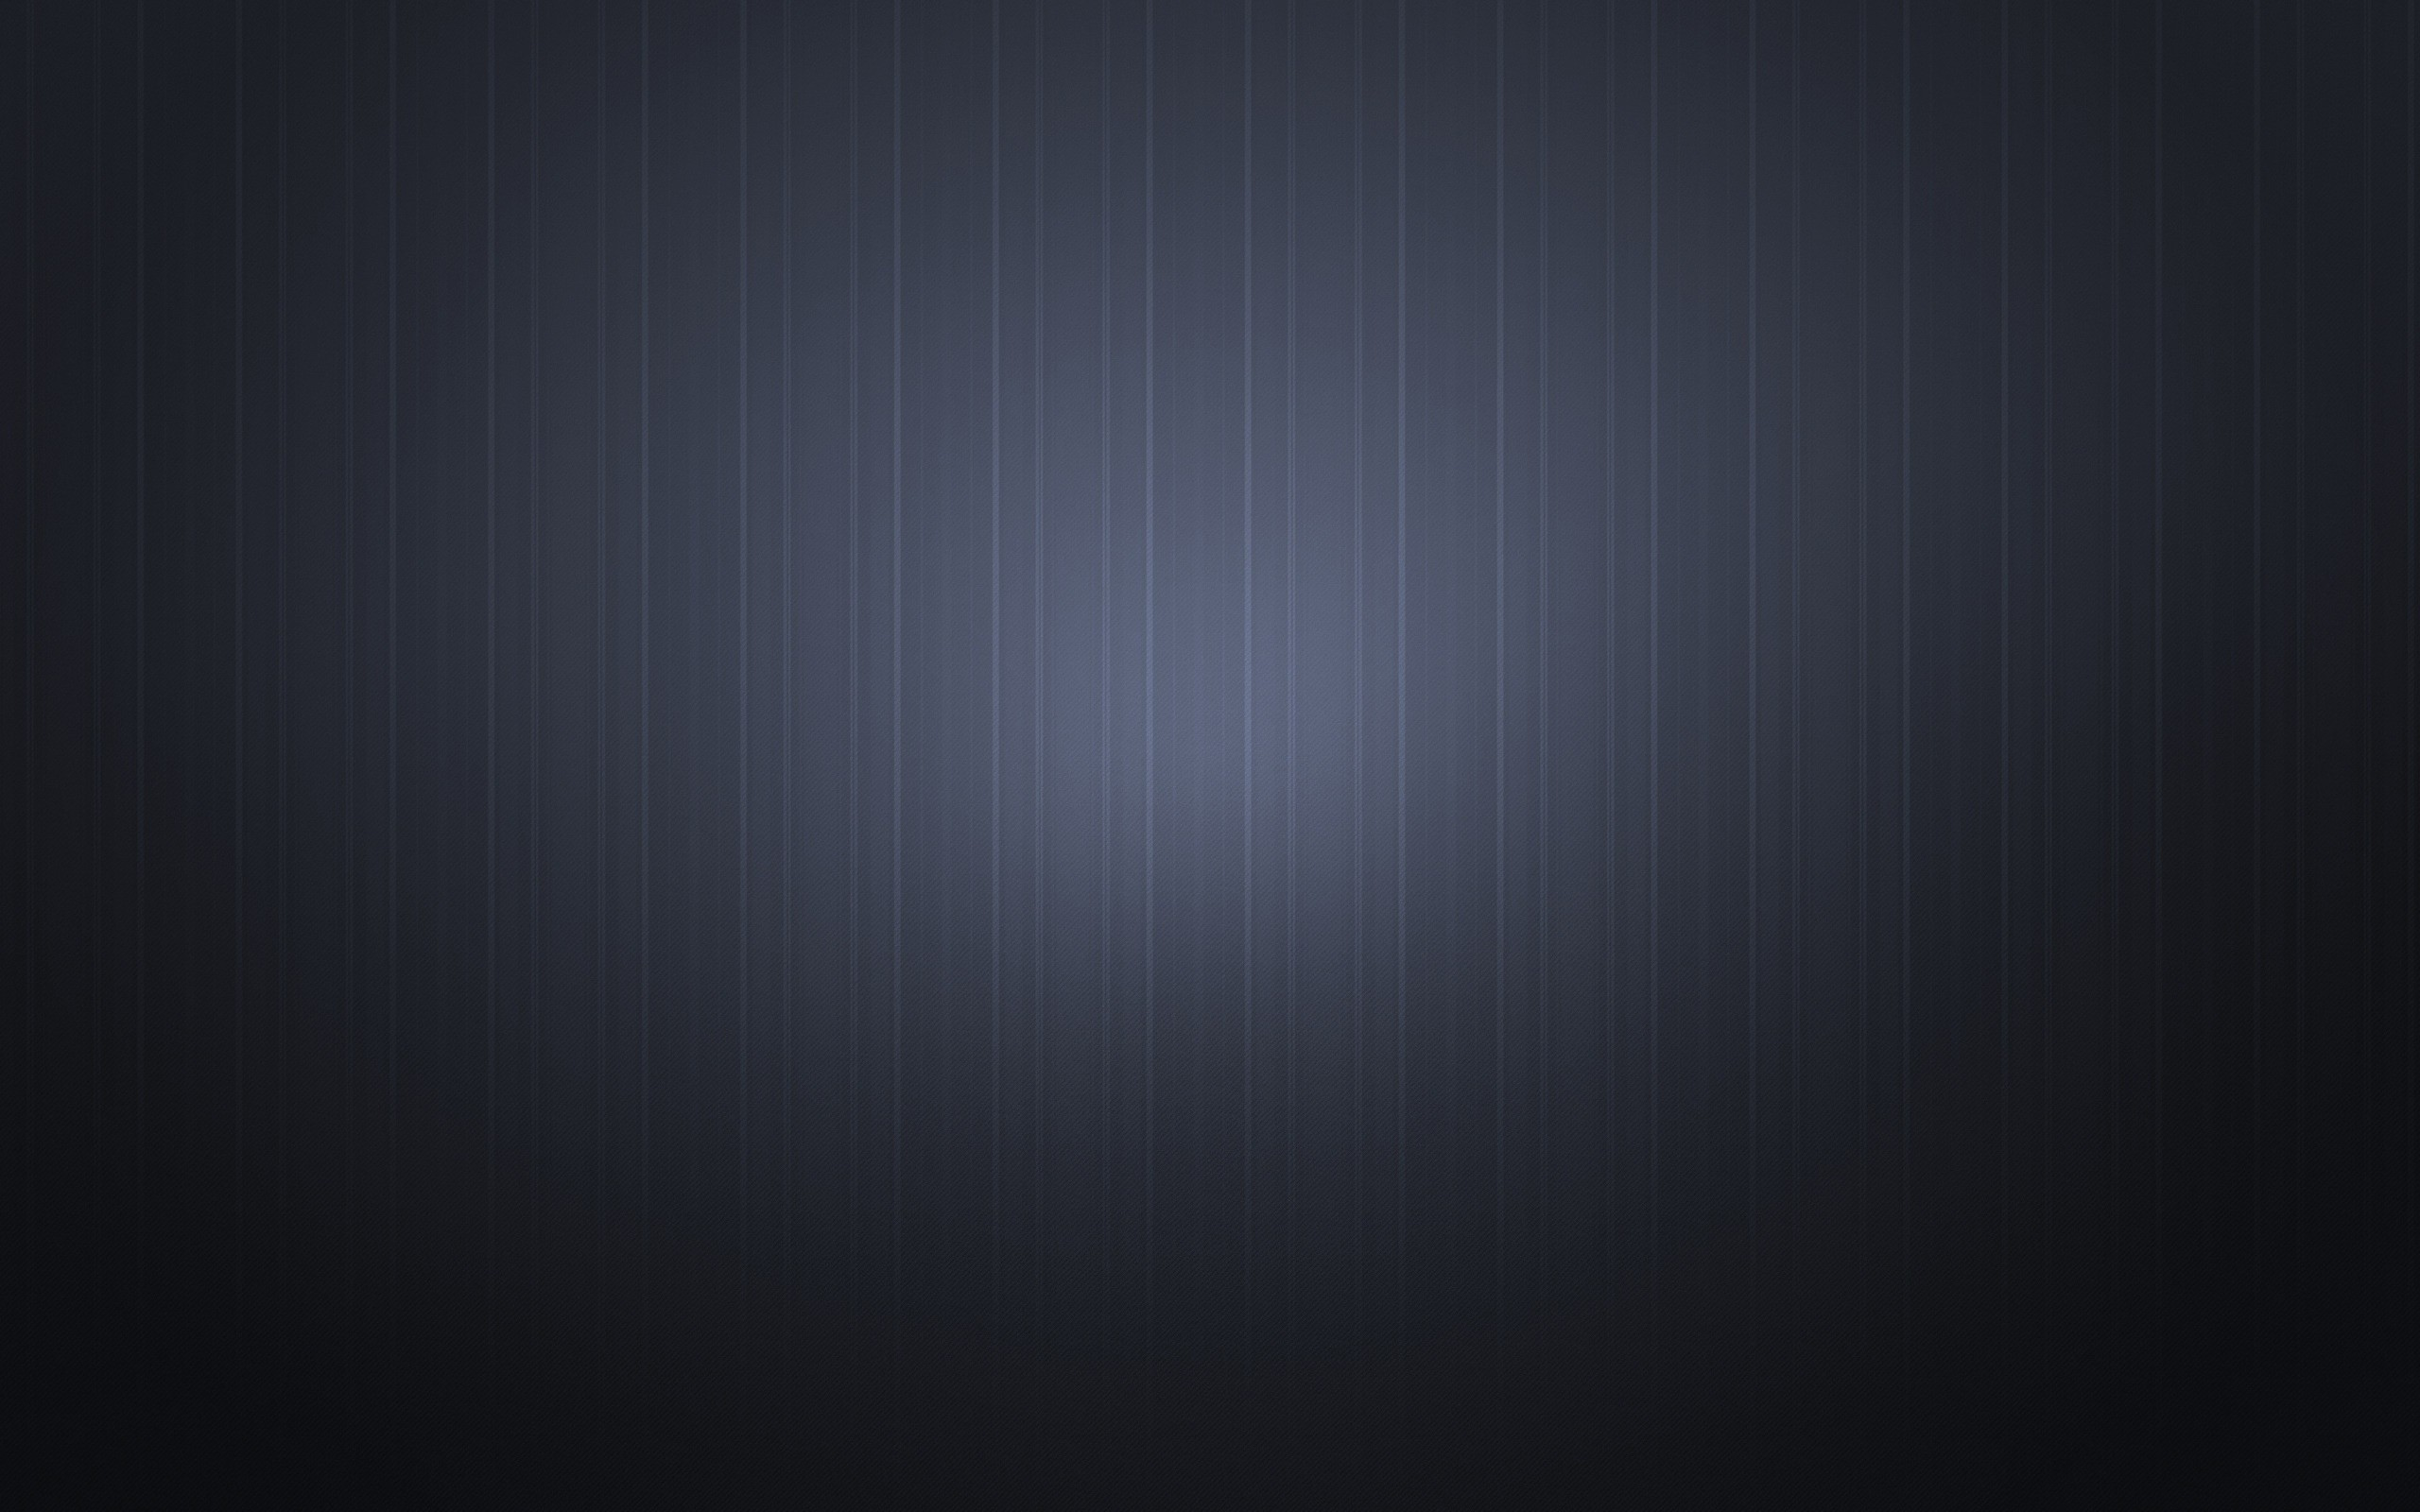 Dark Gray Background 183 ① Download Free Wallpapers For